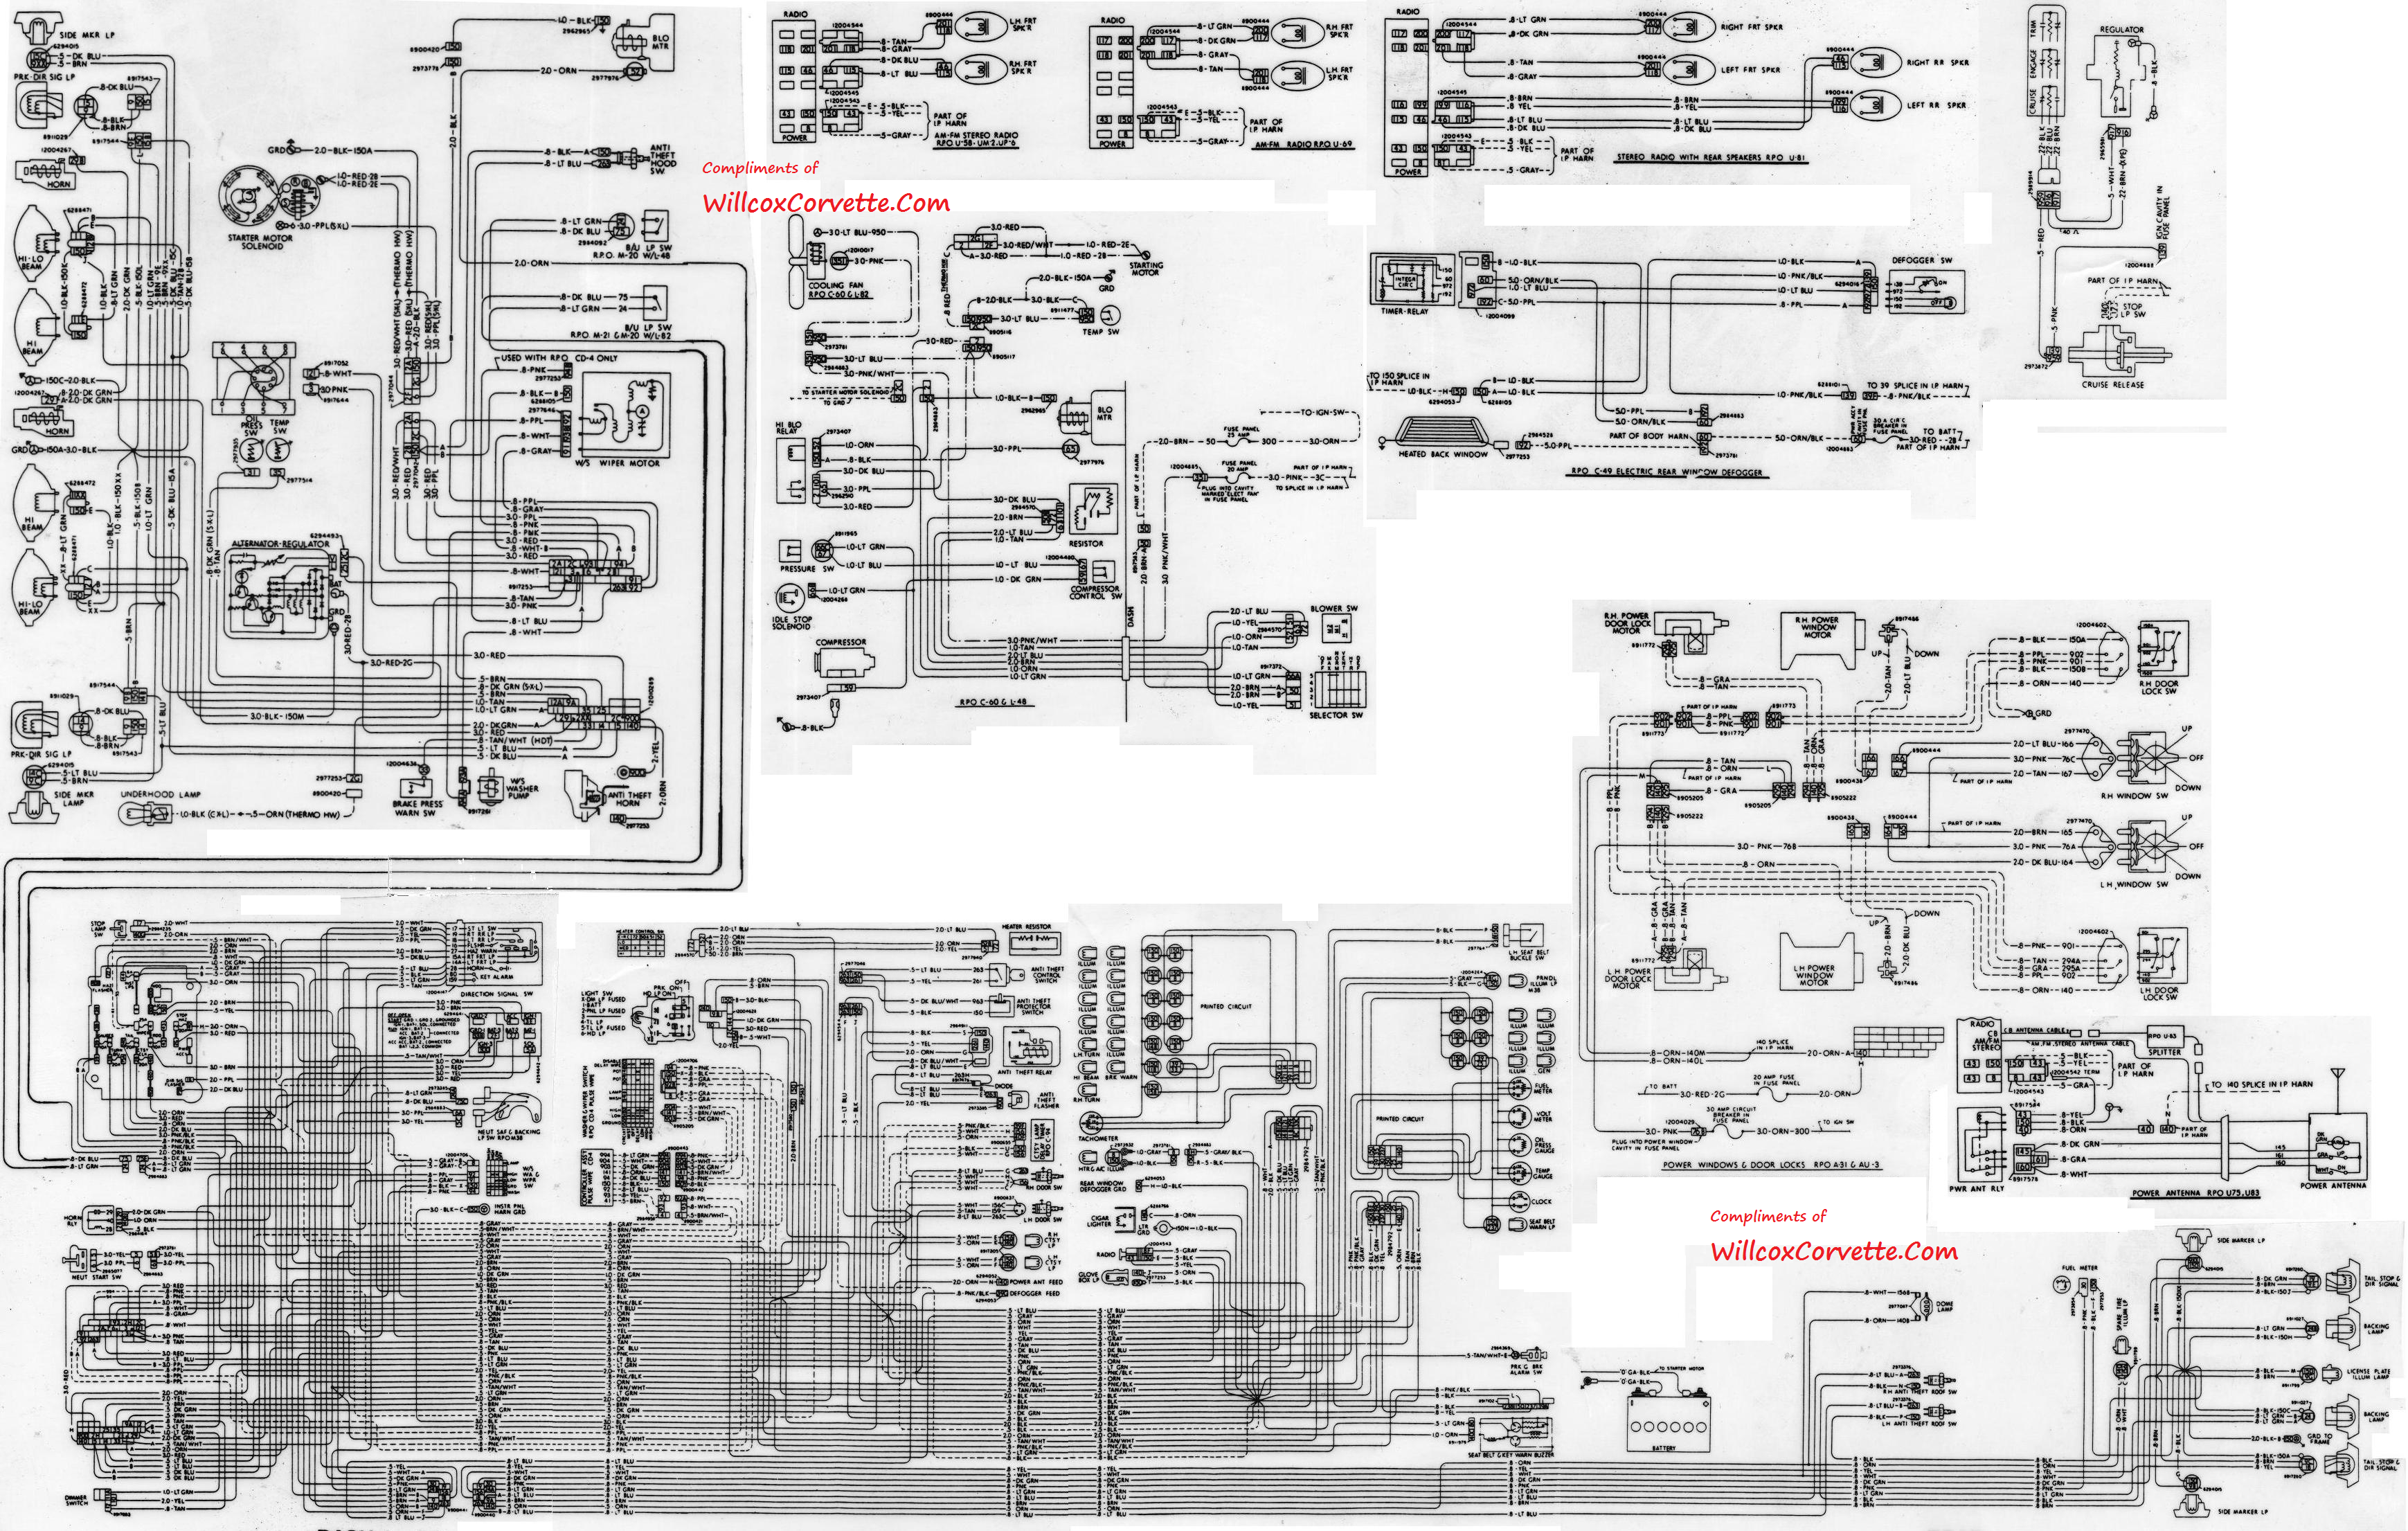 79 COMBINED TRACER SCHEMATIC 1979 corvette wiring diagram aux fan wiring diagram 1979 corvette 1963 corvette wiring diagram at gsmx.co